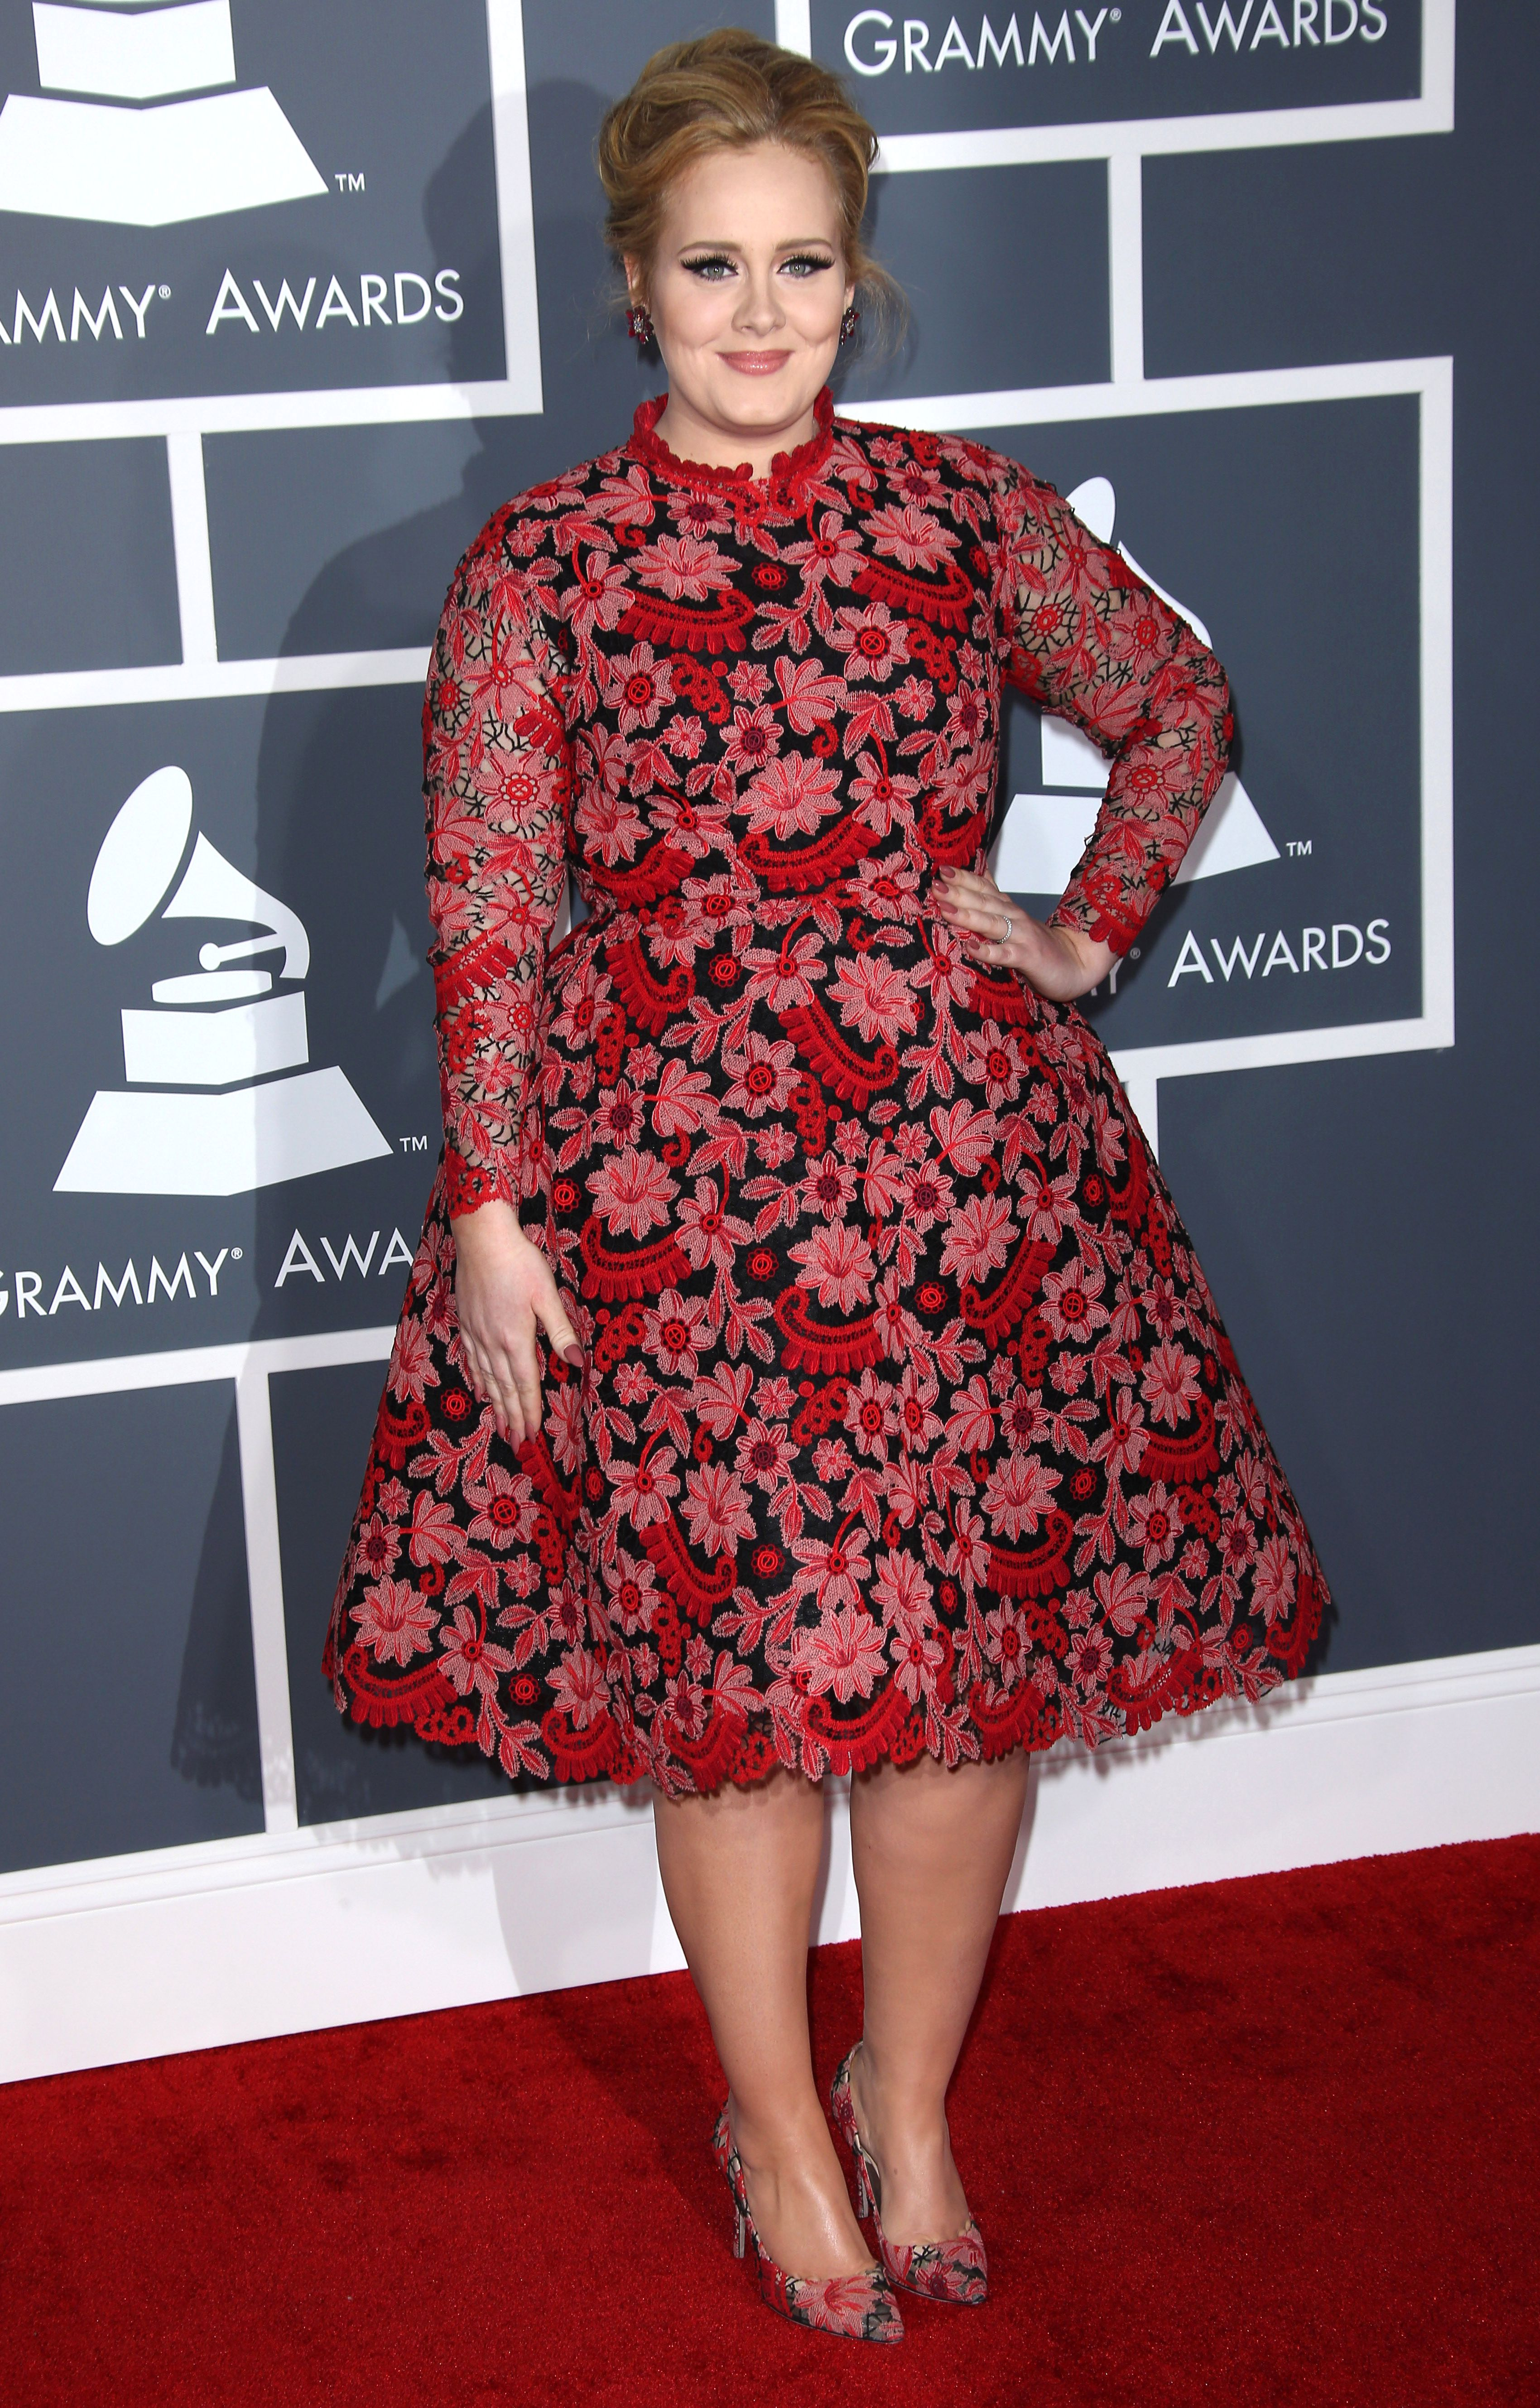 Adele at the Grammy Awards, 2013. Photo by Jim Smeal/BEI/BEI/Shutterstock